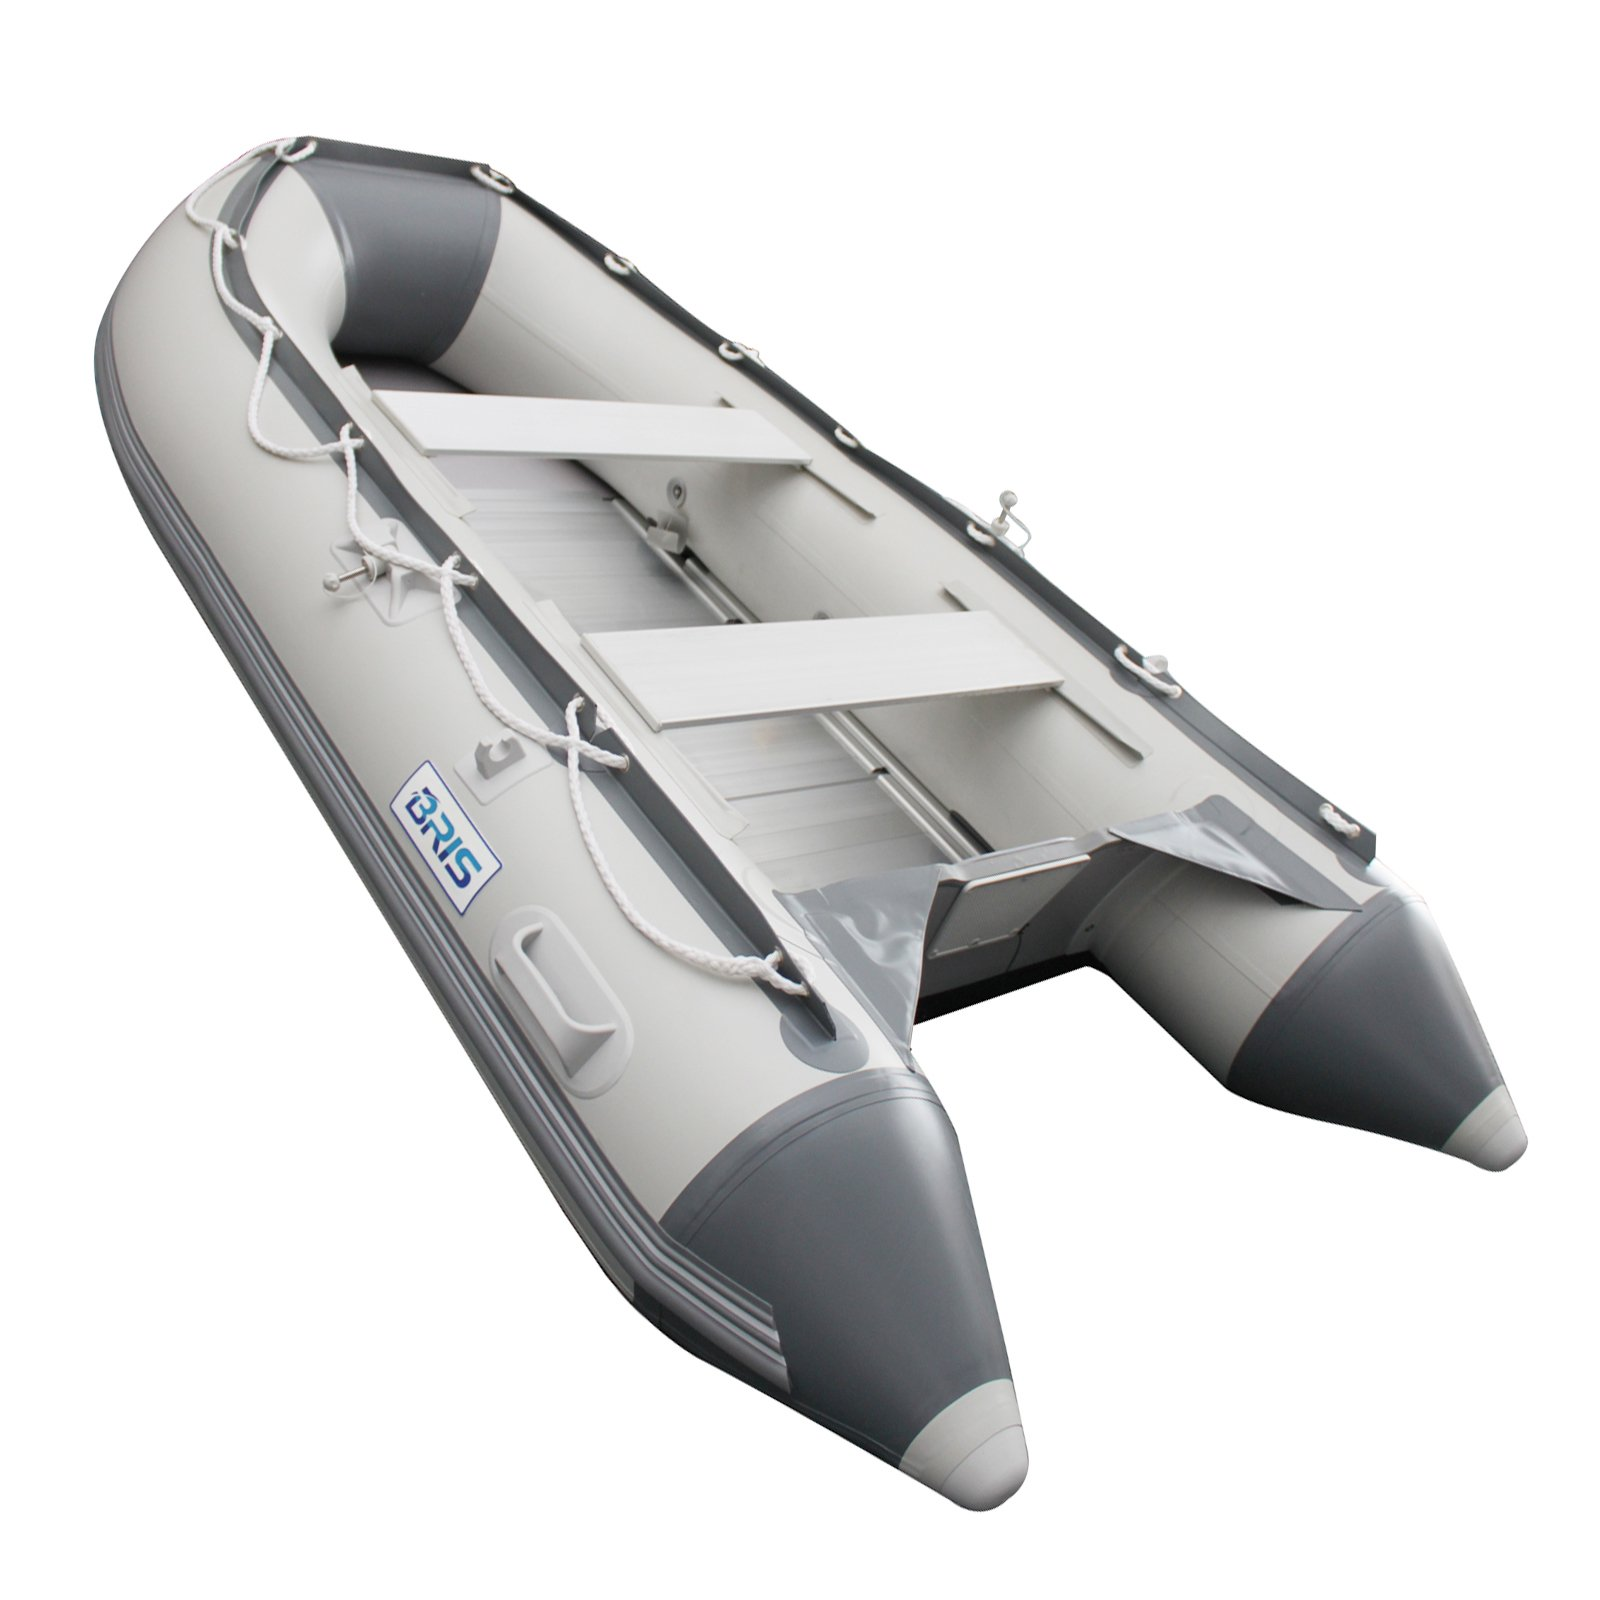 BRIS 9.8 ft Inflatable Boat Inflatable Dinghy Boat Yacht Tender Fishing Raft by Bris Boat